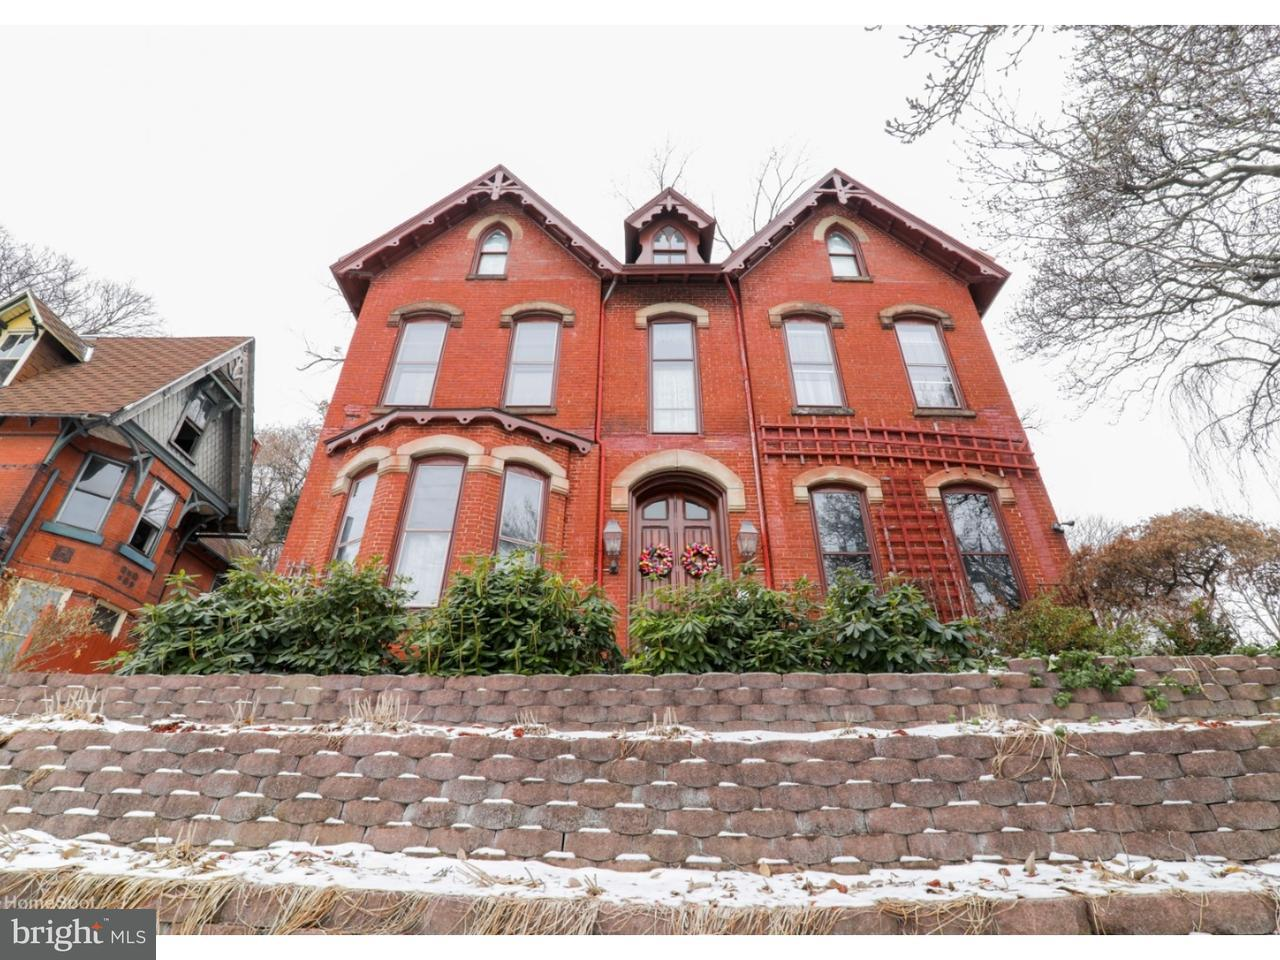 Single Family Home for Sale at 315 S CENTRE Street Pottsville, Pennsylvania 17901 United States